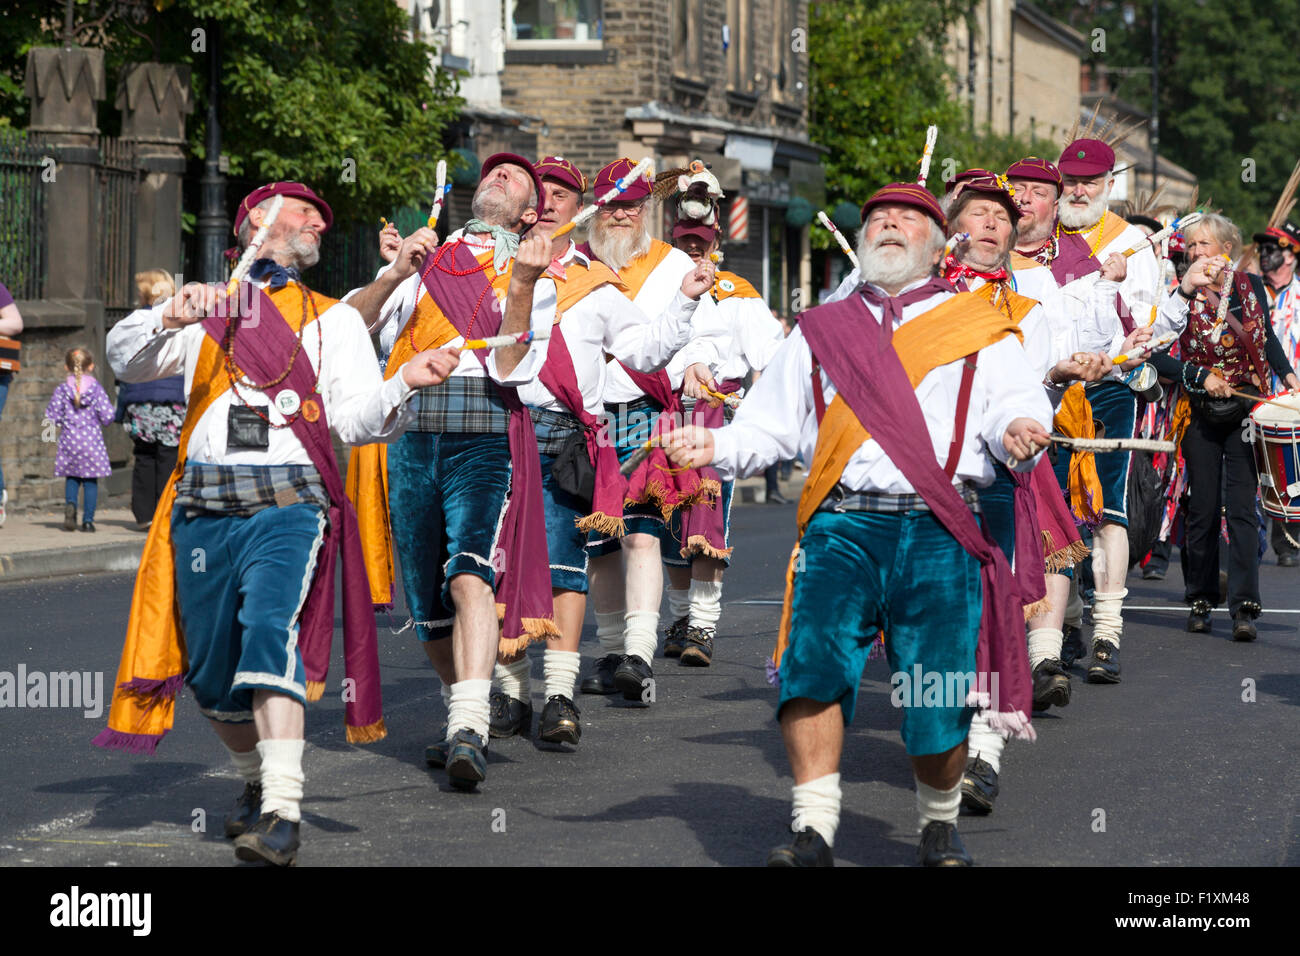 wrigley-head-morrismen-in-the-rushbearing-festival-procession-sowerby-F1XM48.jpg